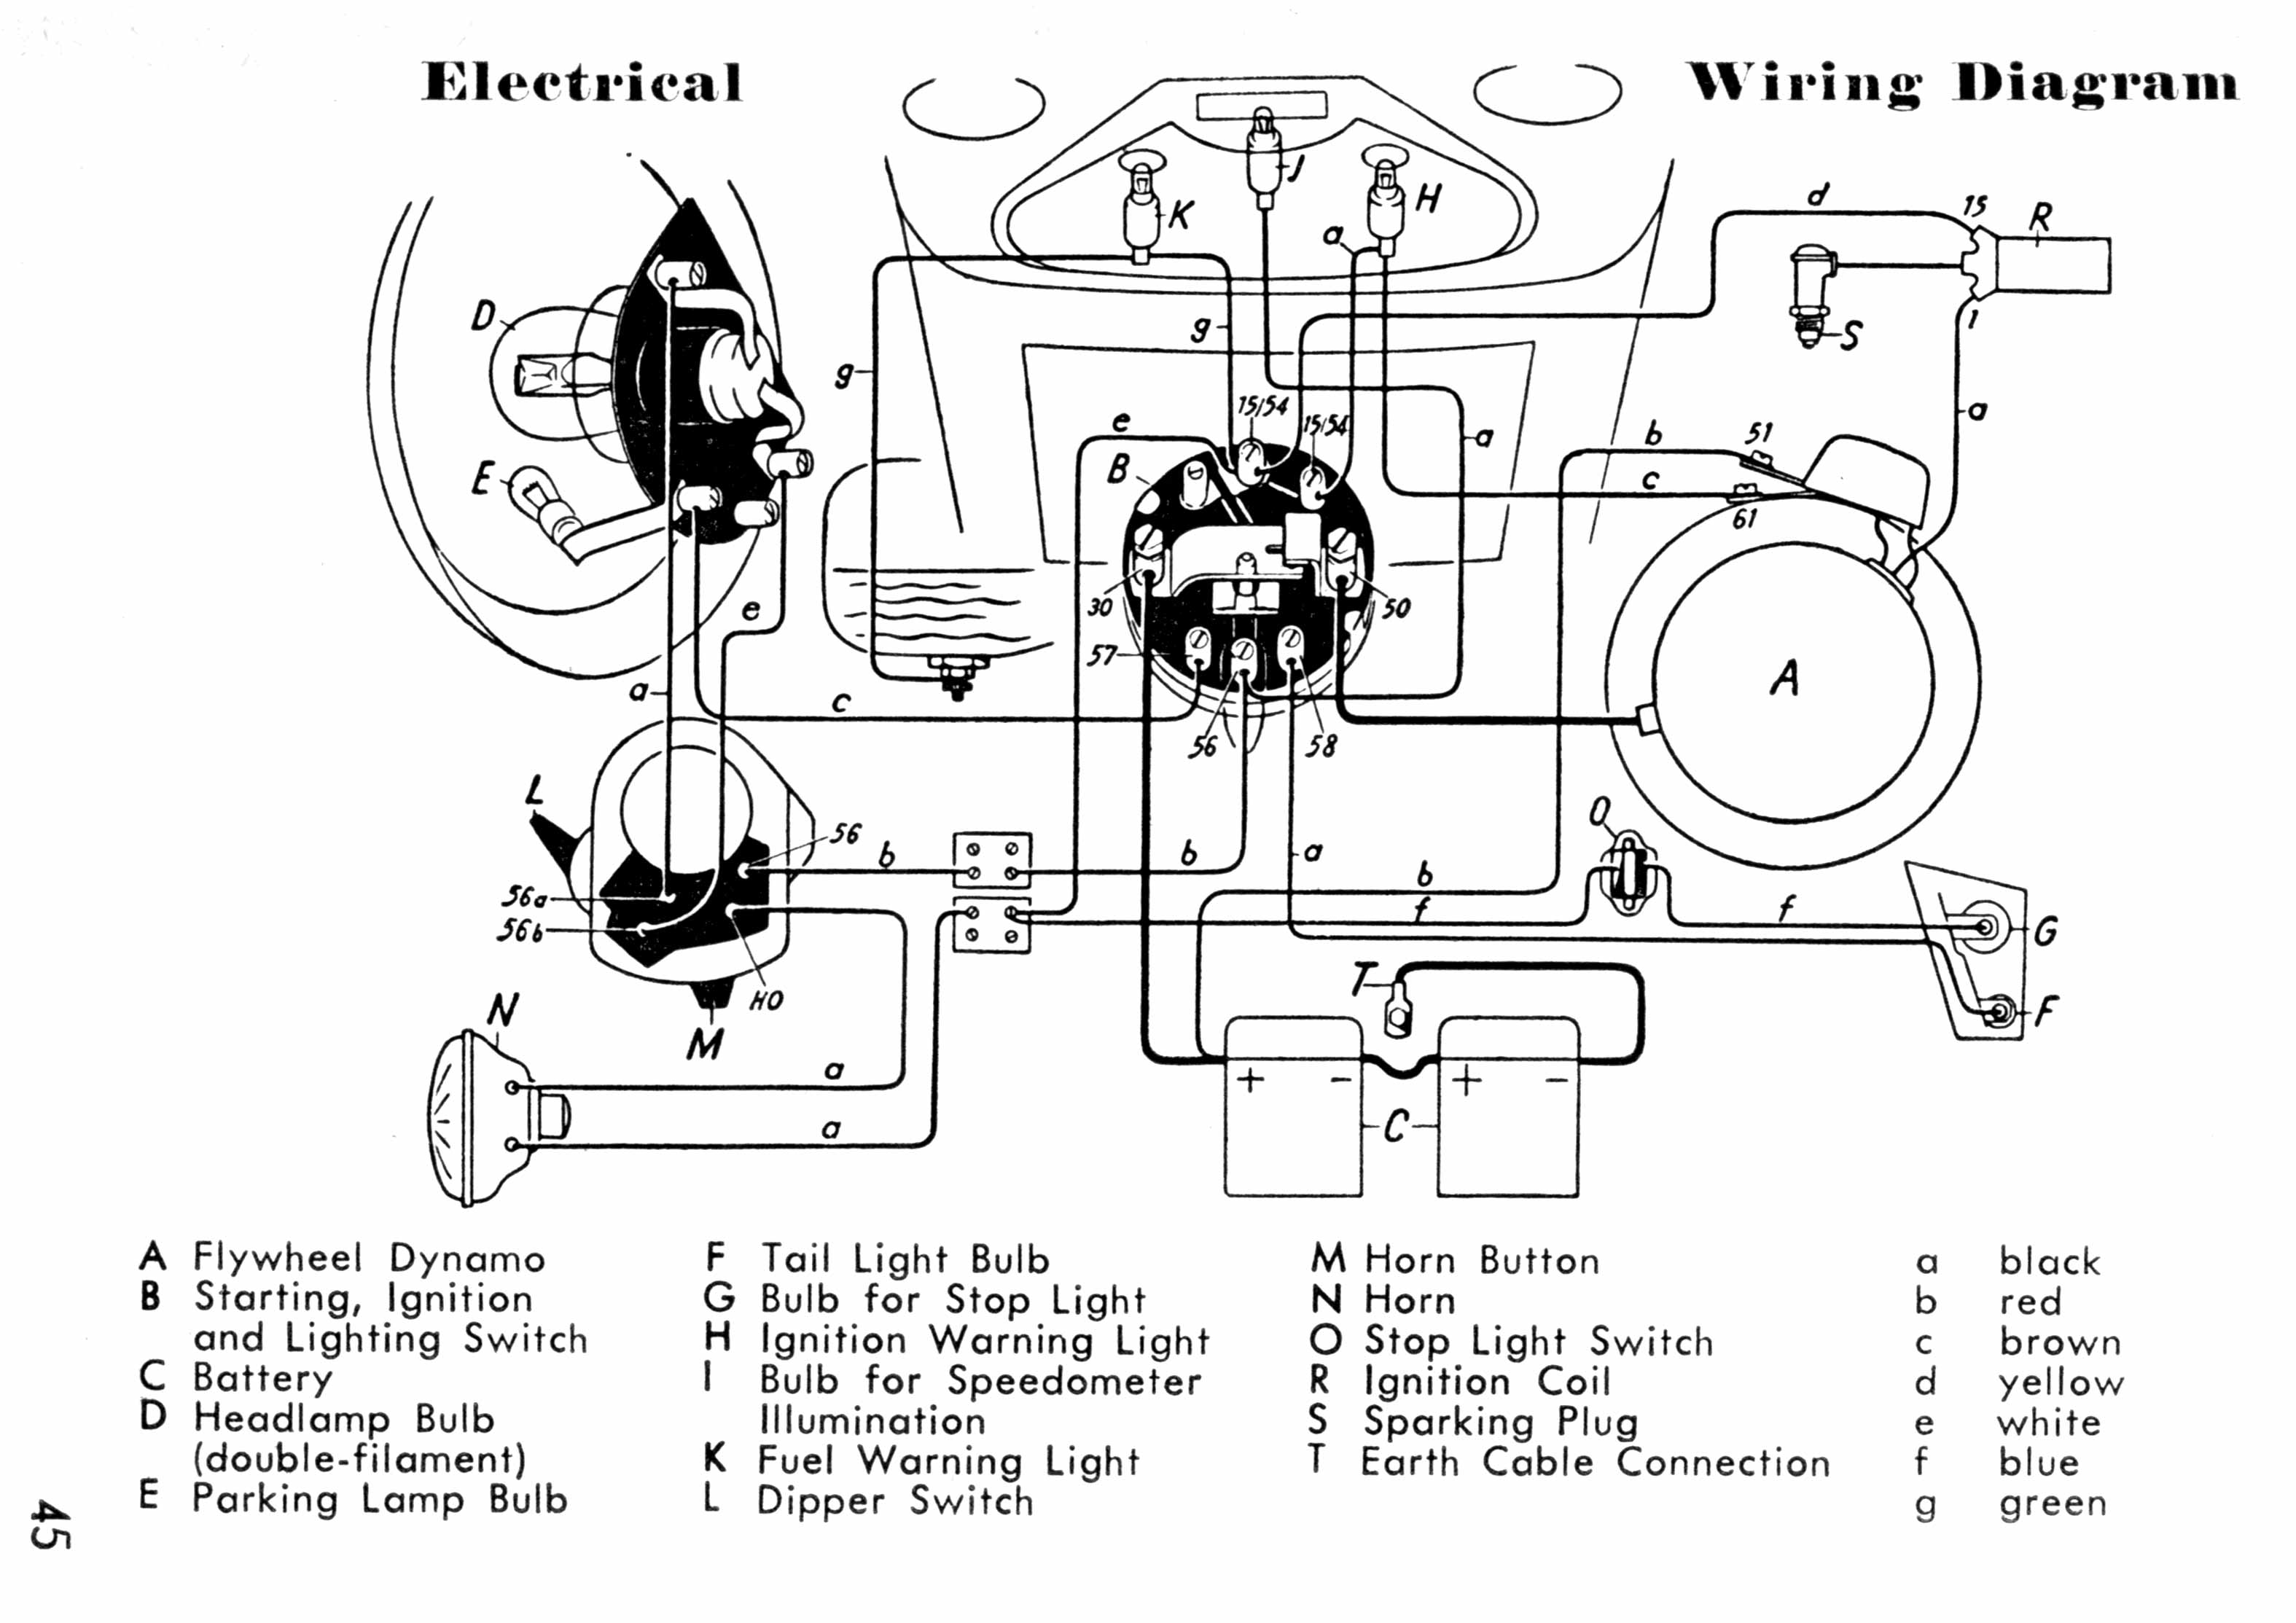 Hammond B3 Organ Schematic likewise Fender Pa Fortis Wiring Diagram in addition Prima2 as well Jandy Aqualink Rs Wiring From Main Breaker Schematic as well 281263939206608396. on guitar electronic parts and diagrams